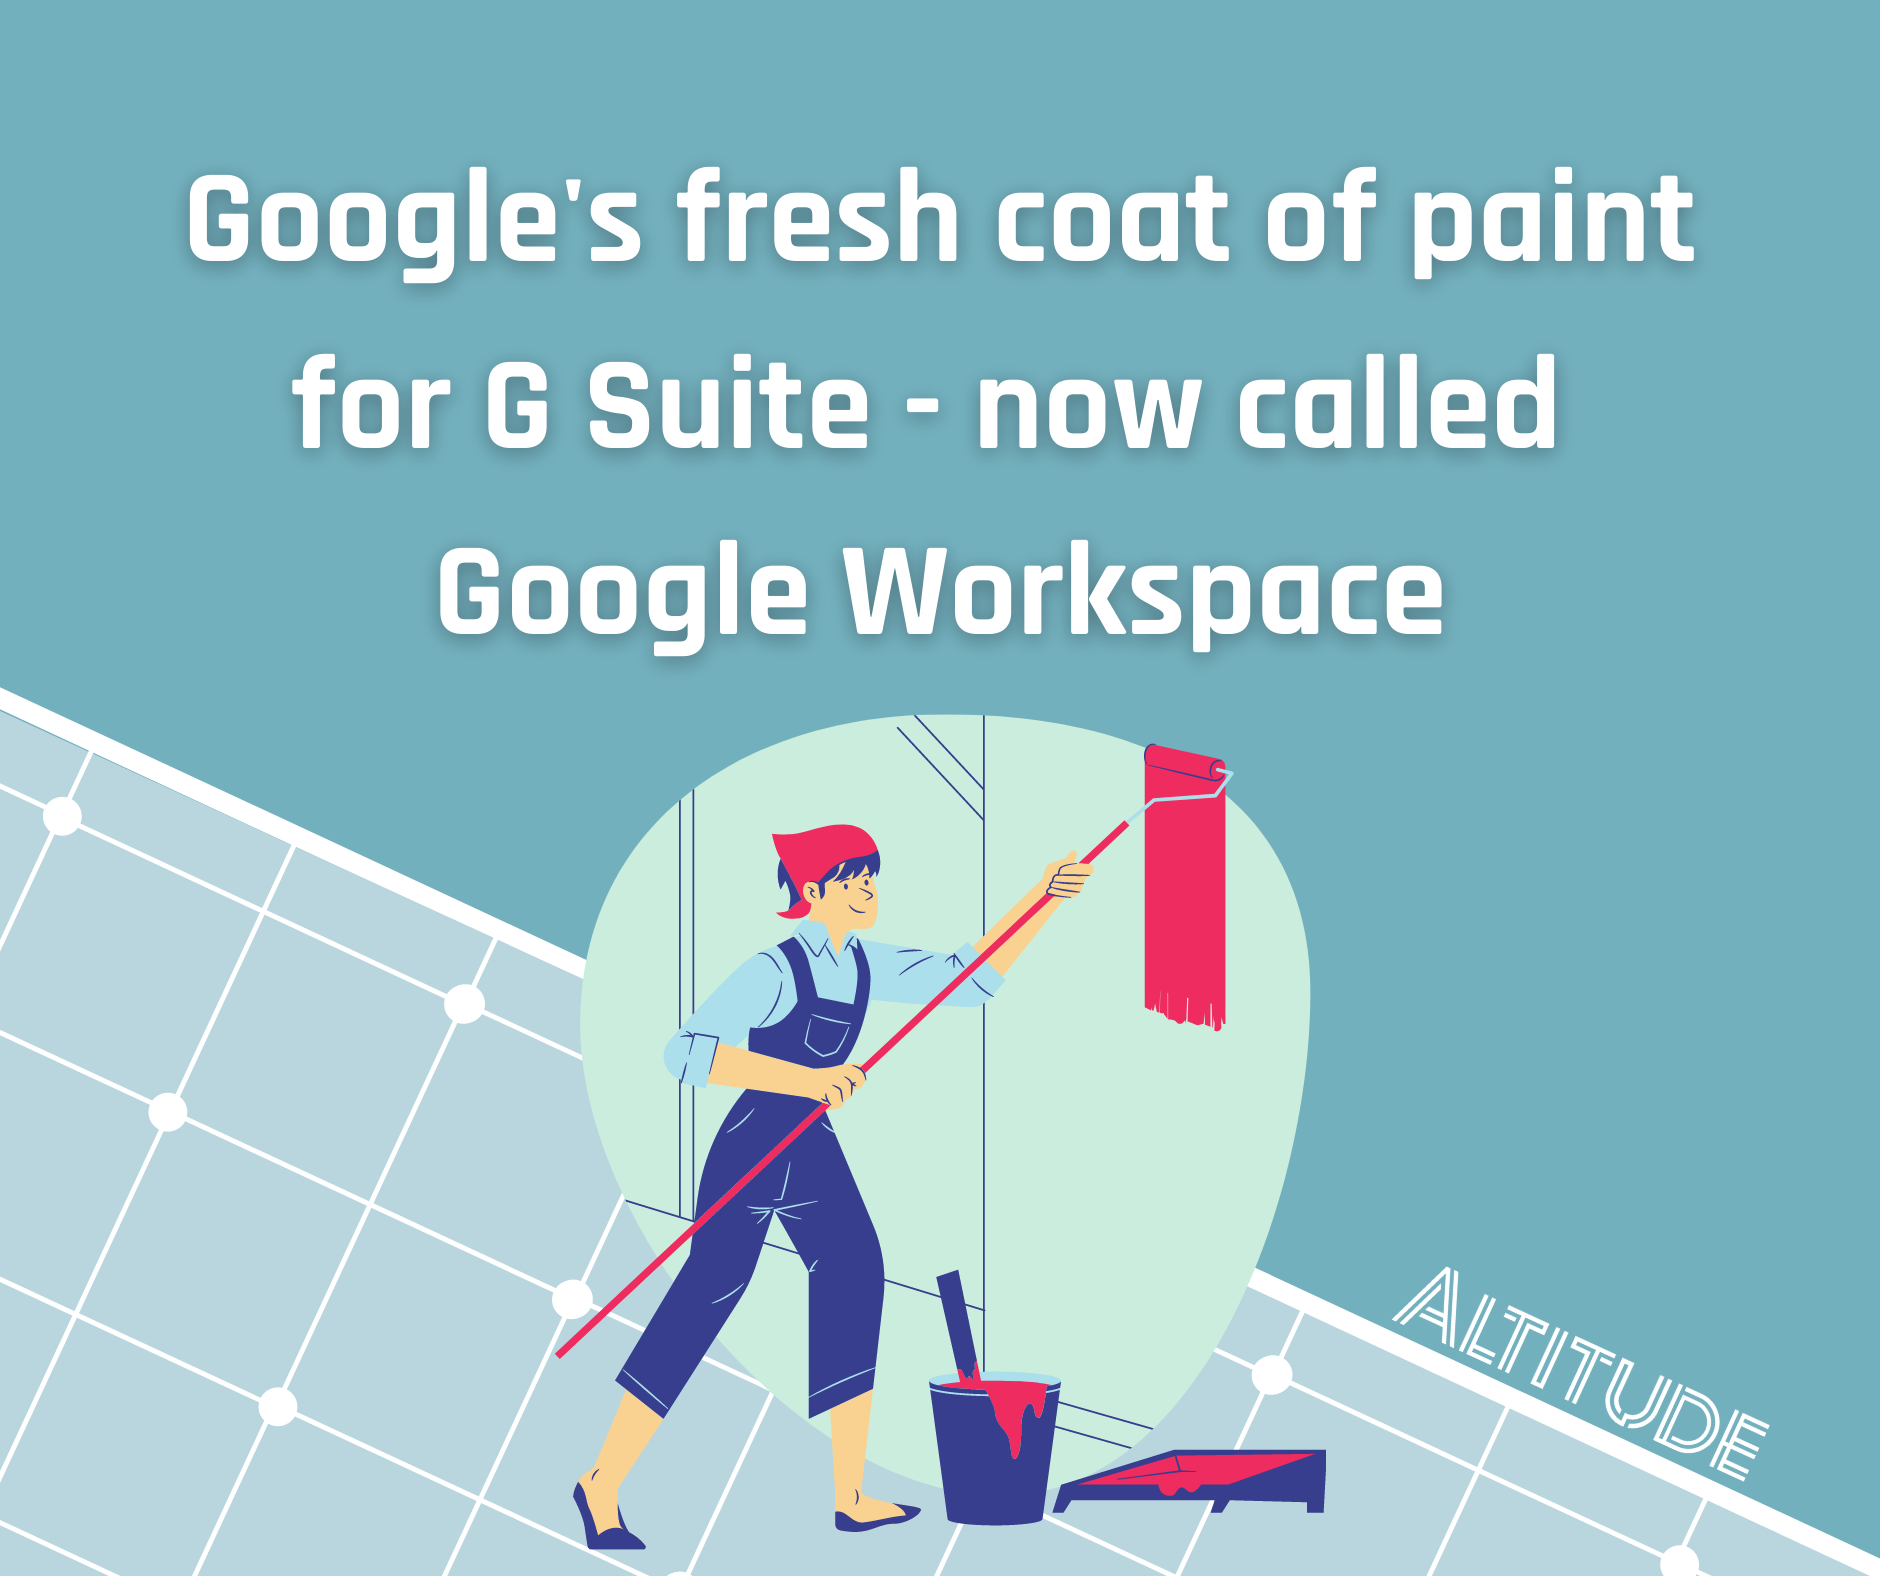 Google's fresh coat of paint for G-Suite now called Google Workspace